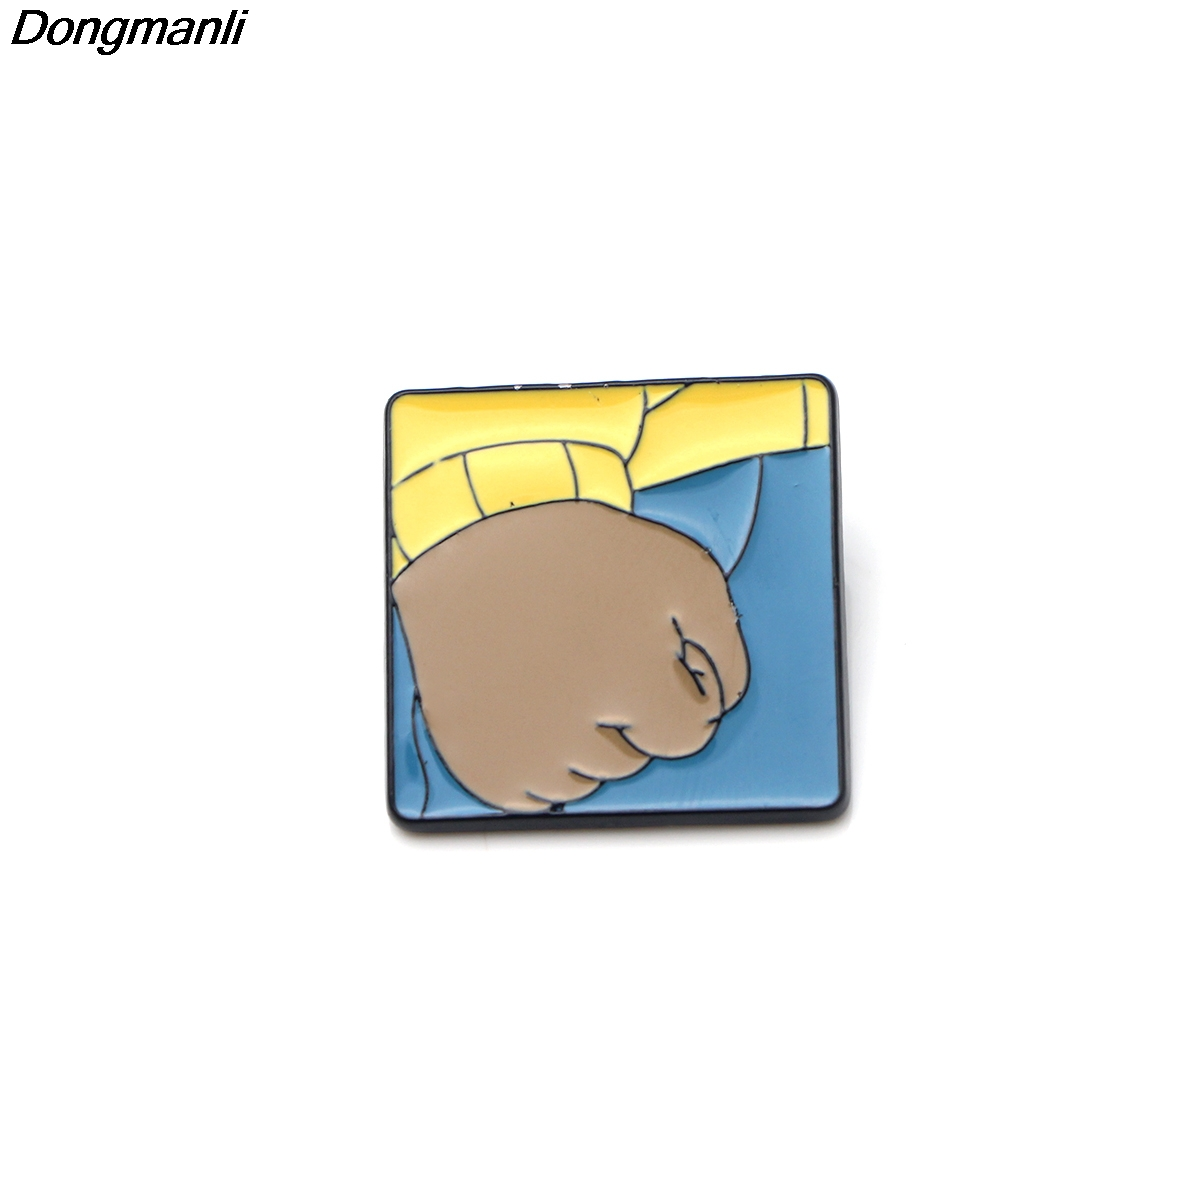 P2596 Dongmanli Arthur's Fist Metal Enamel Pins and Brooches for Women Men  Lapel pin backpack badge Gifts